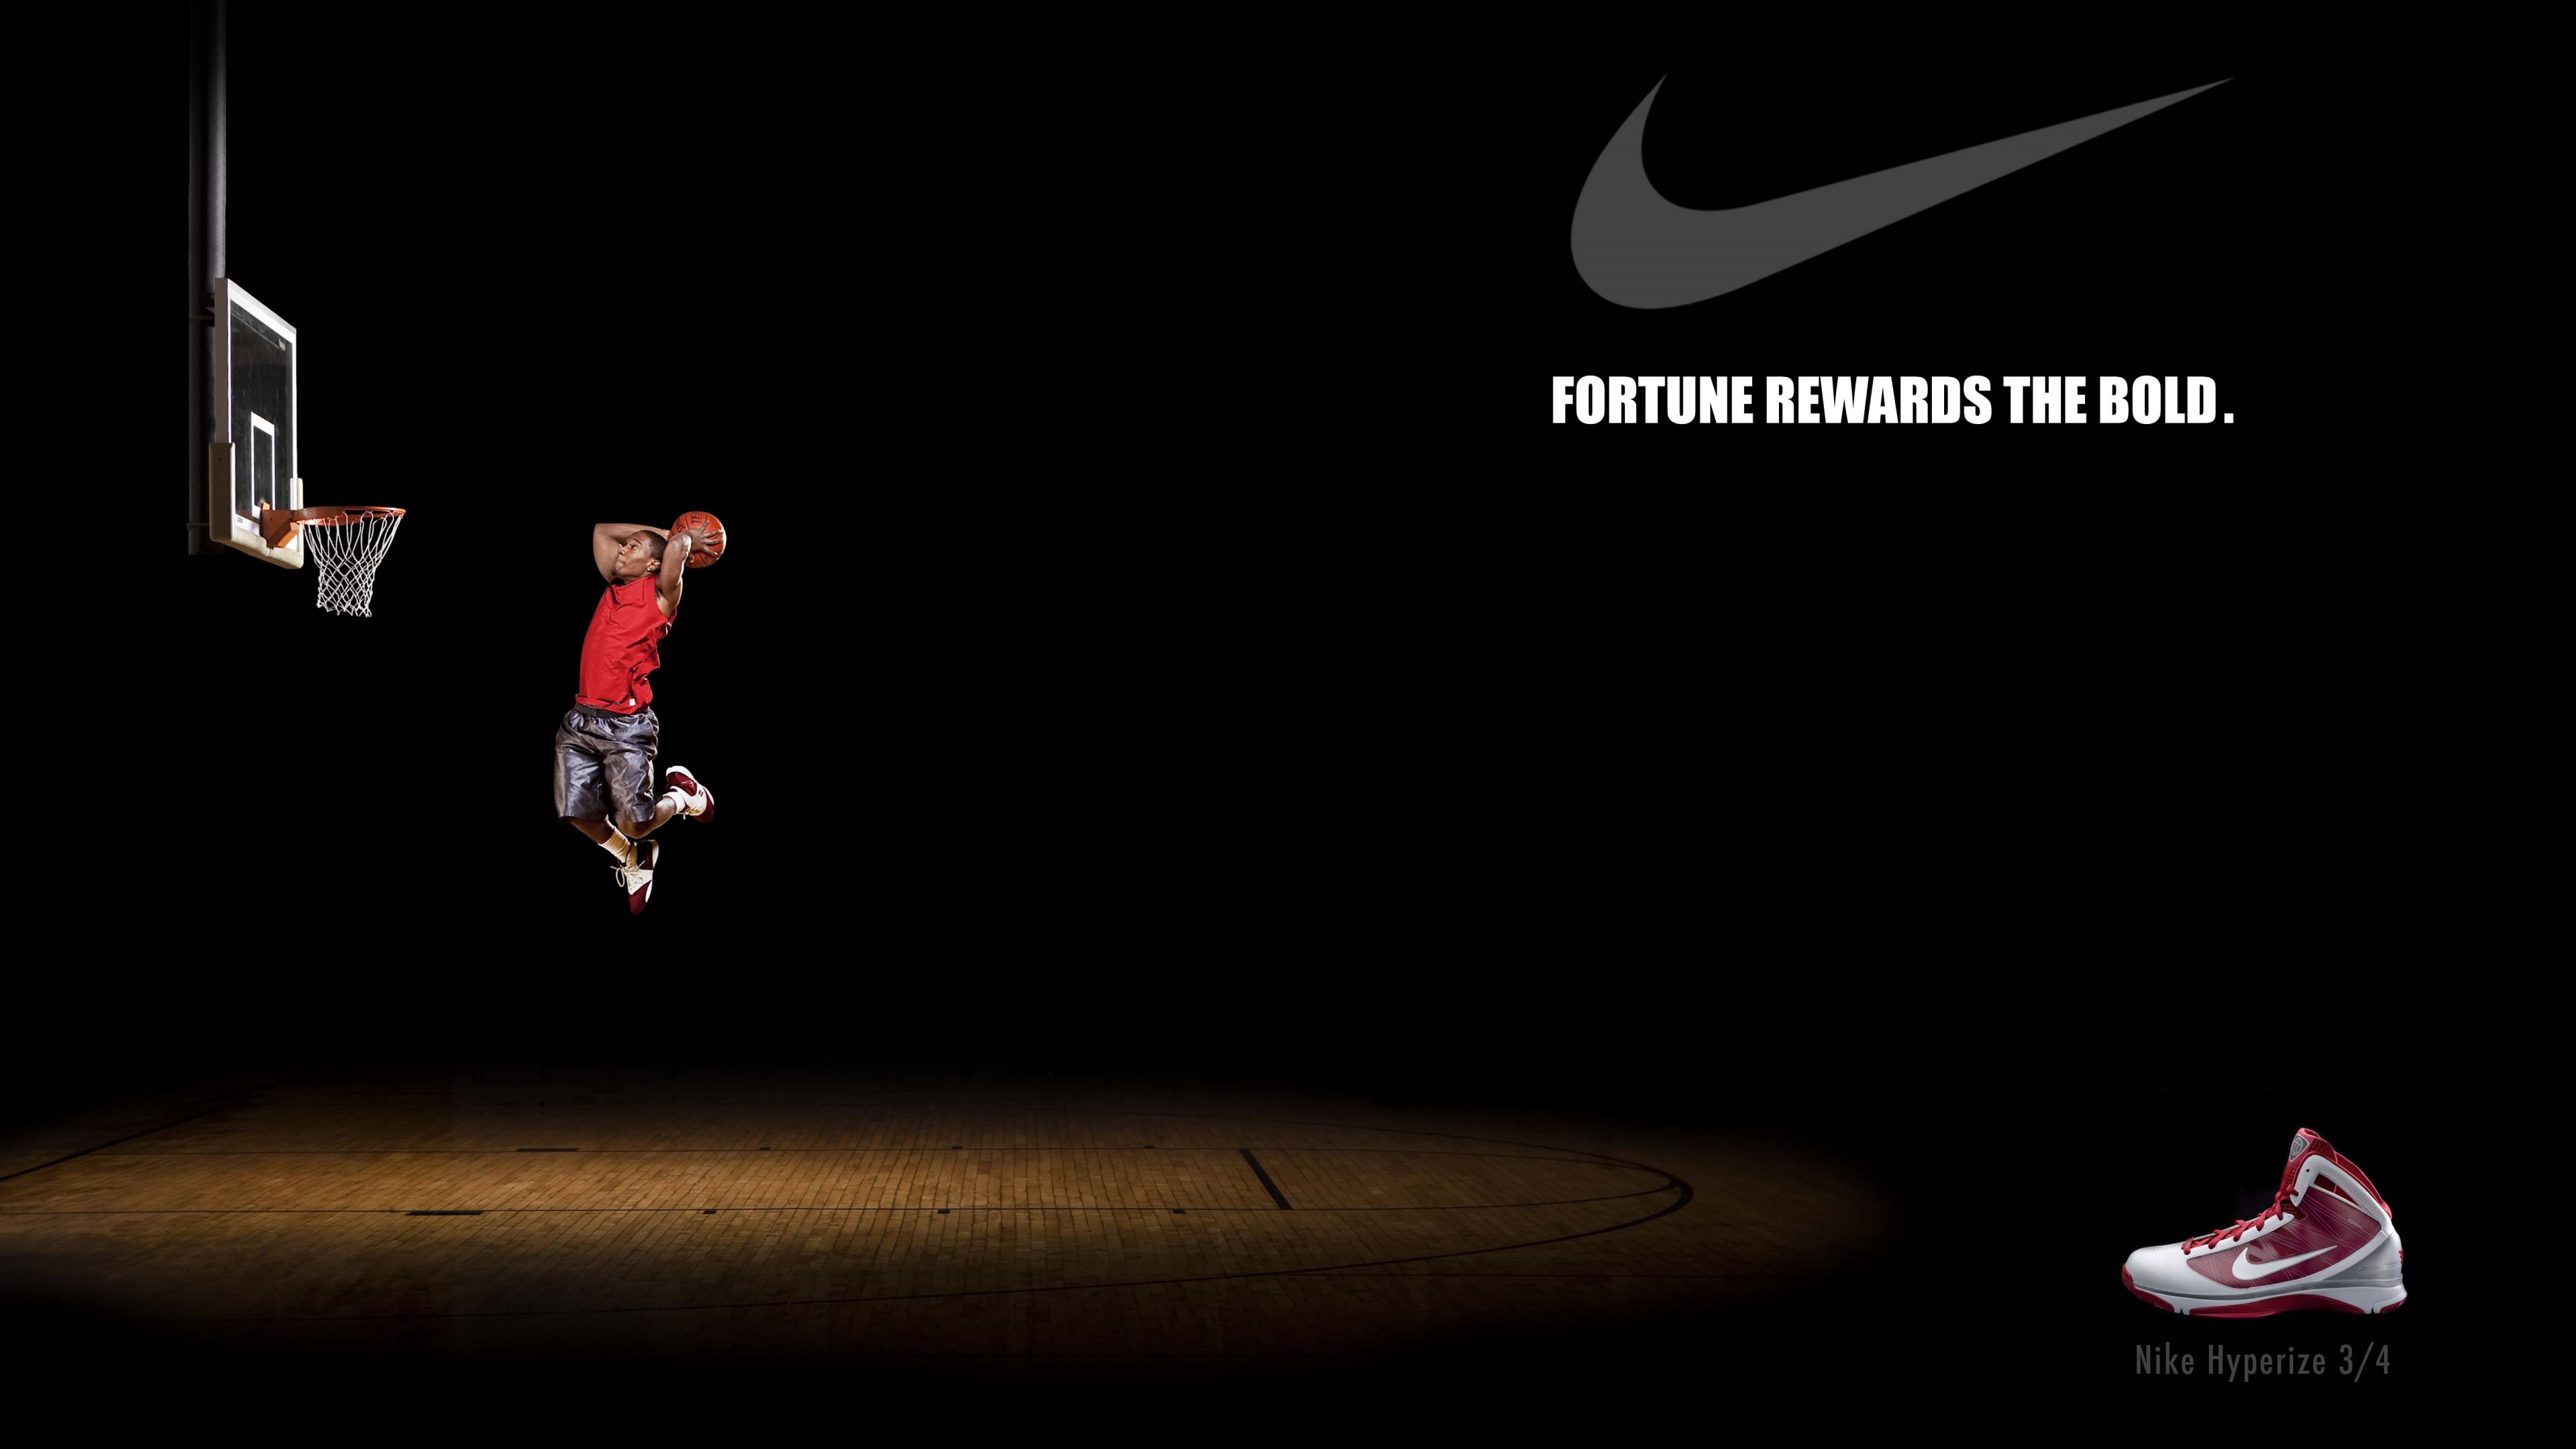 Free Download Nike Creative 4k Posters Hd Wallpapers 183 4k 3840x2160 For Your Desktop Mobile Tablet Explore 76 Nike Basketball Wallpaper Cool Nike Wallpapers Basketball Court Wallpaper Nike Money Wallpaper